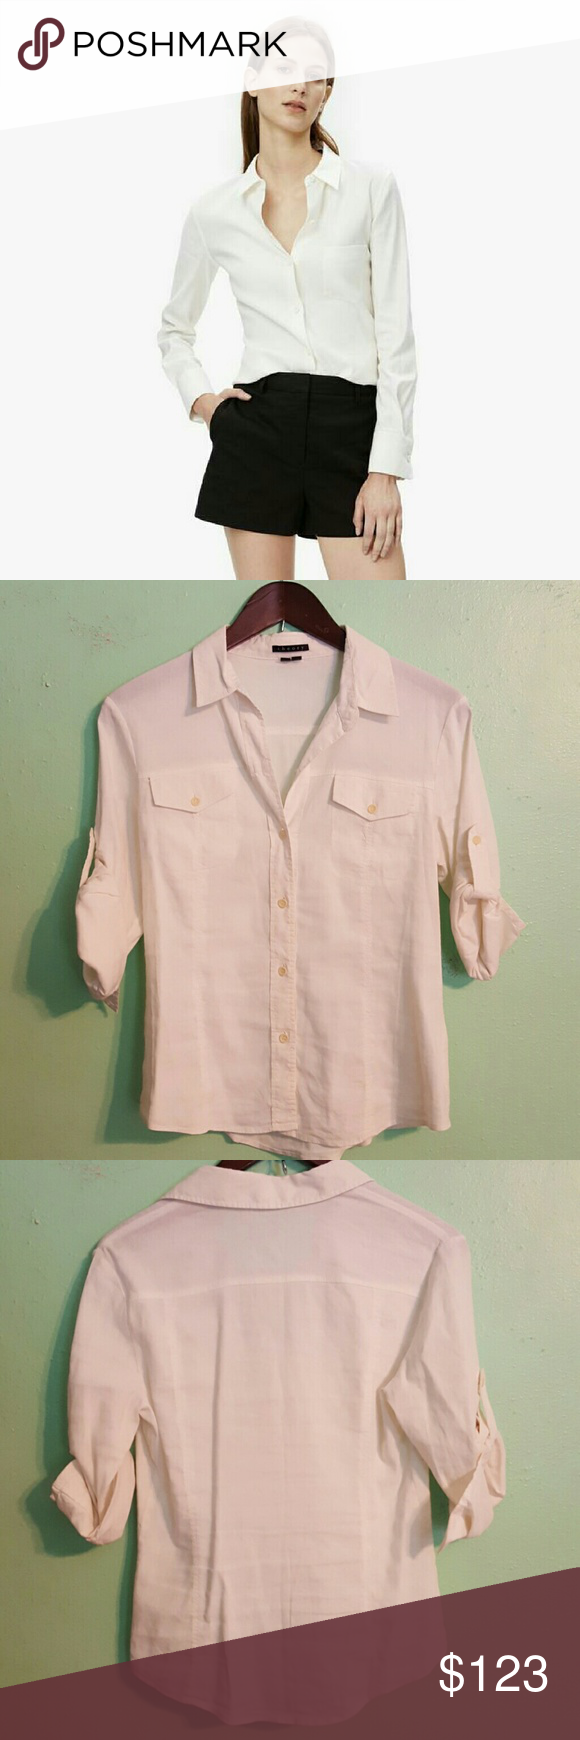 Theory white linen blend button down EUC. Theory white linen button down. You can either cuff the sleeves or wear them long. Double breasted front pockets. 62% linen 36% viscose 2% spandex. Dry clean only. Theory Tops Button Down Shirts